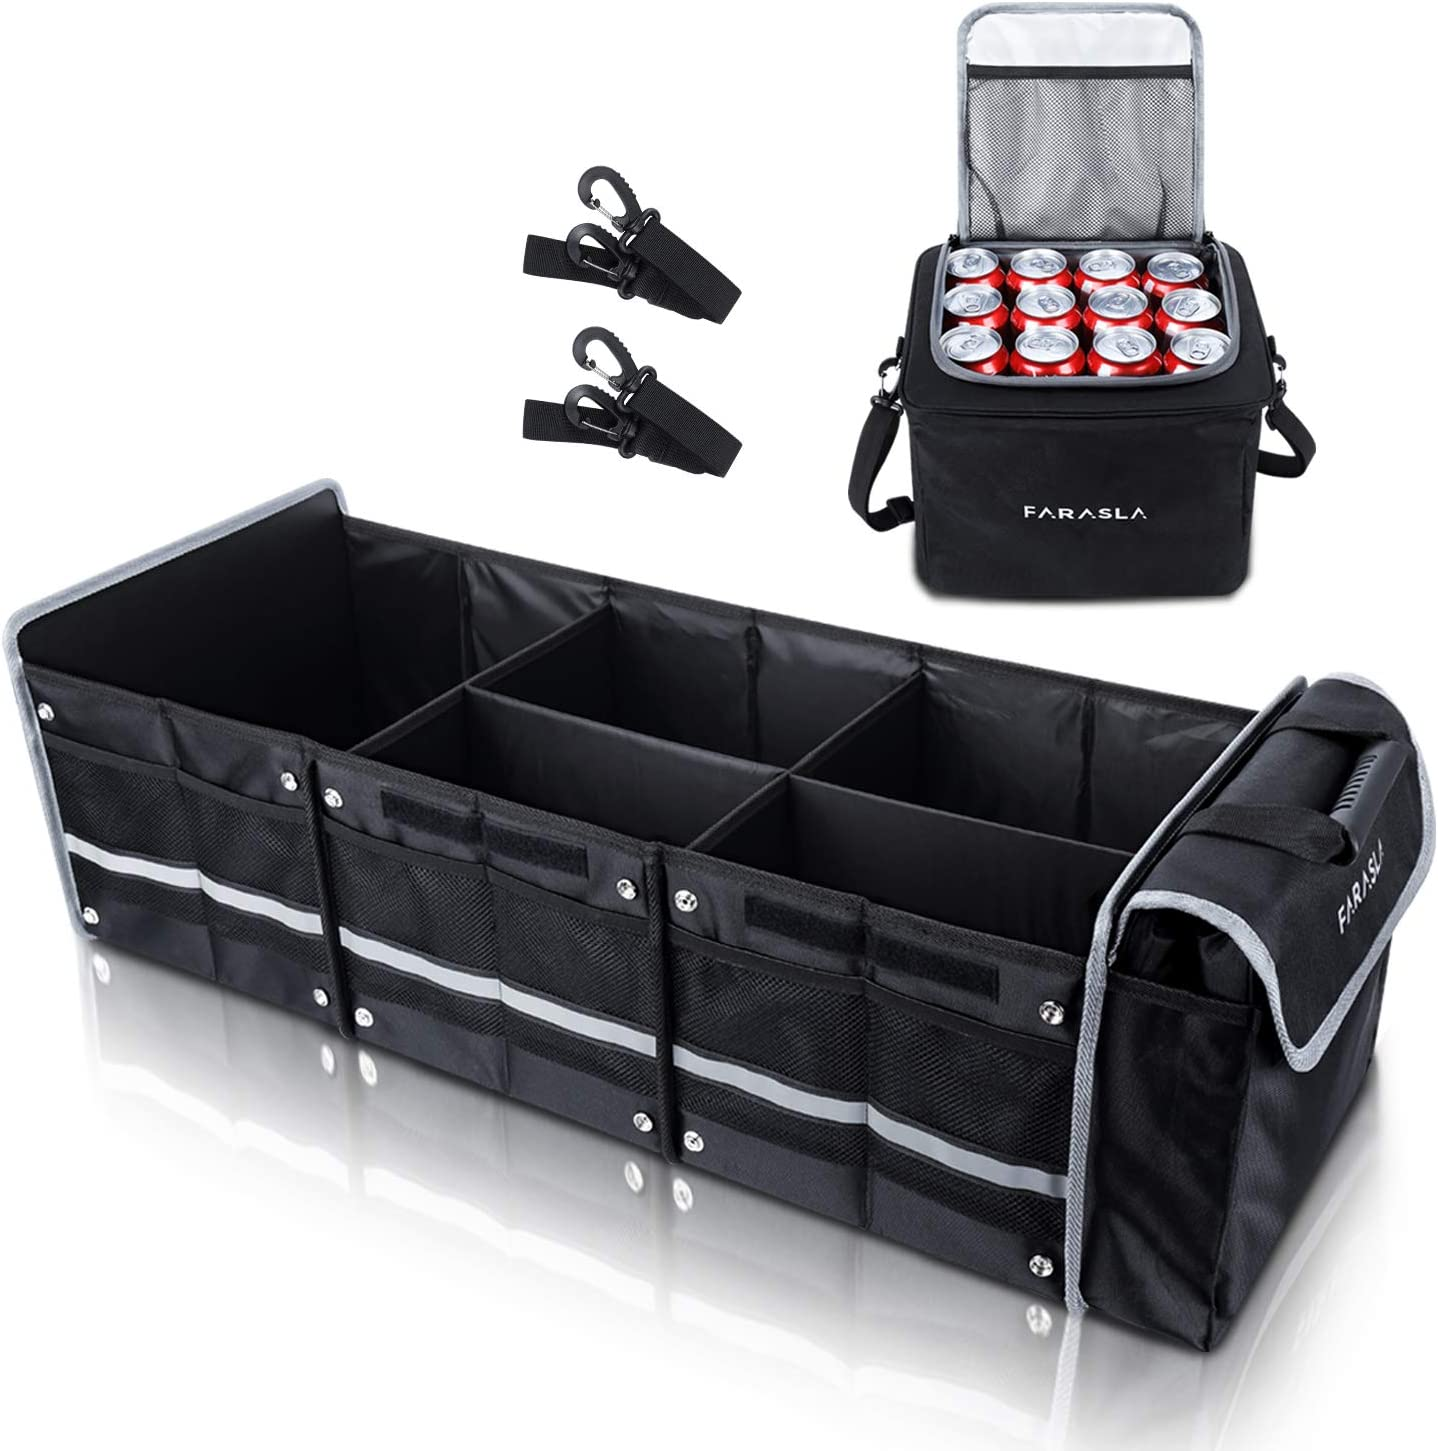 Black Collapsible Storage Waterproof Durable with Aluminium Alloy Handle and Securing Straps Morrols Car Trunk Organizer Multi Compartments